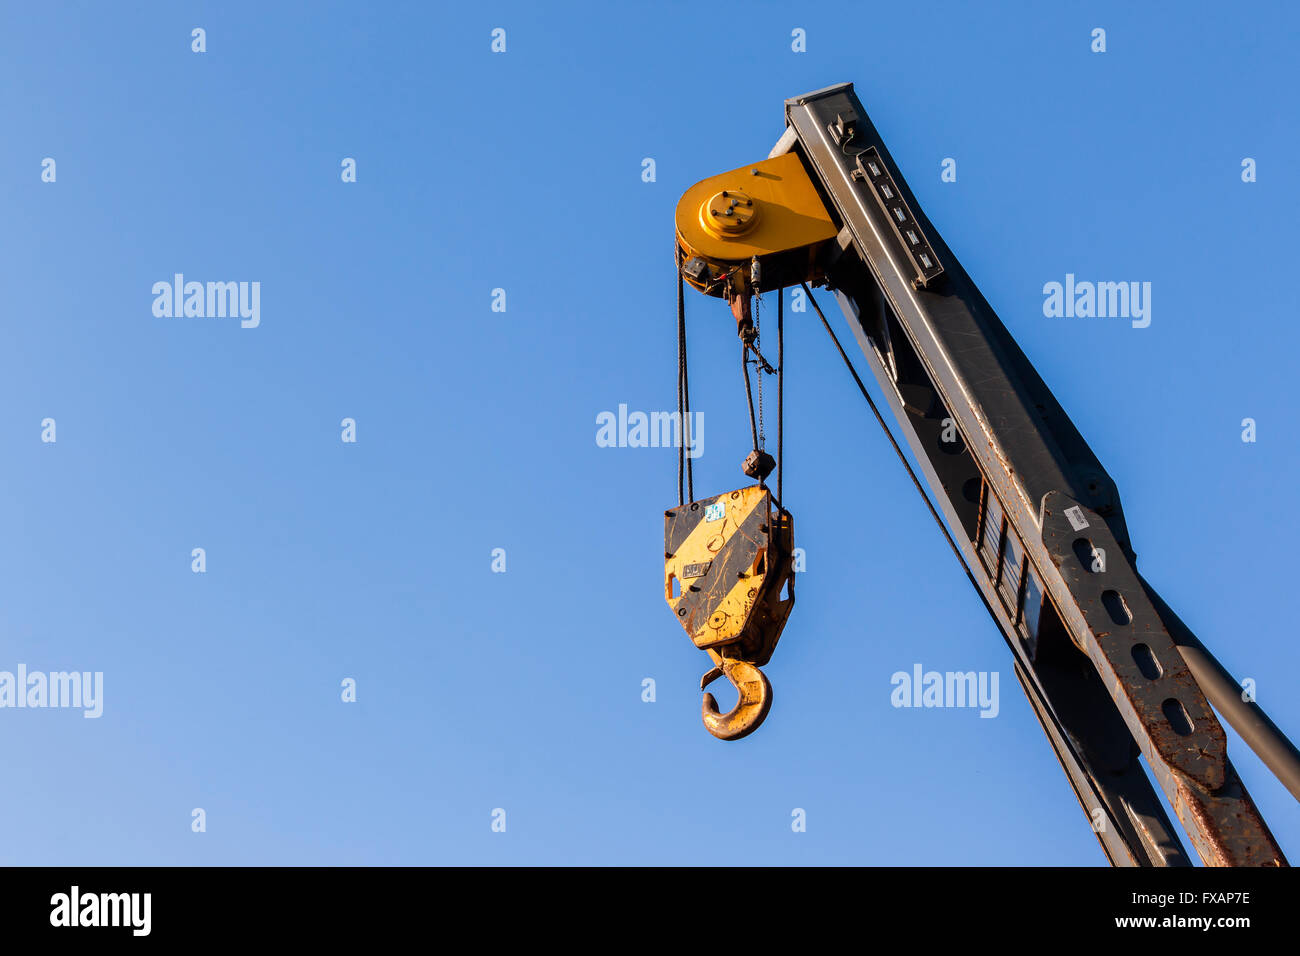 Mobile Crane Rigging : Heavy mobile industrial crane for rigging lifting on